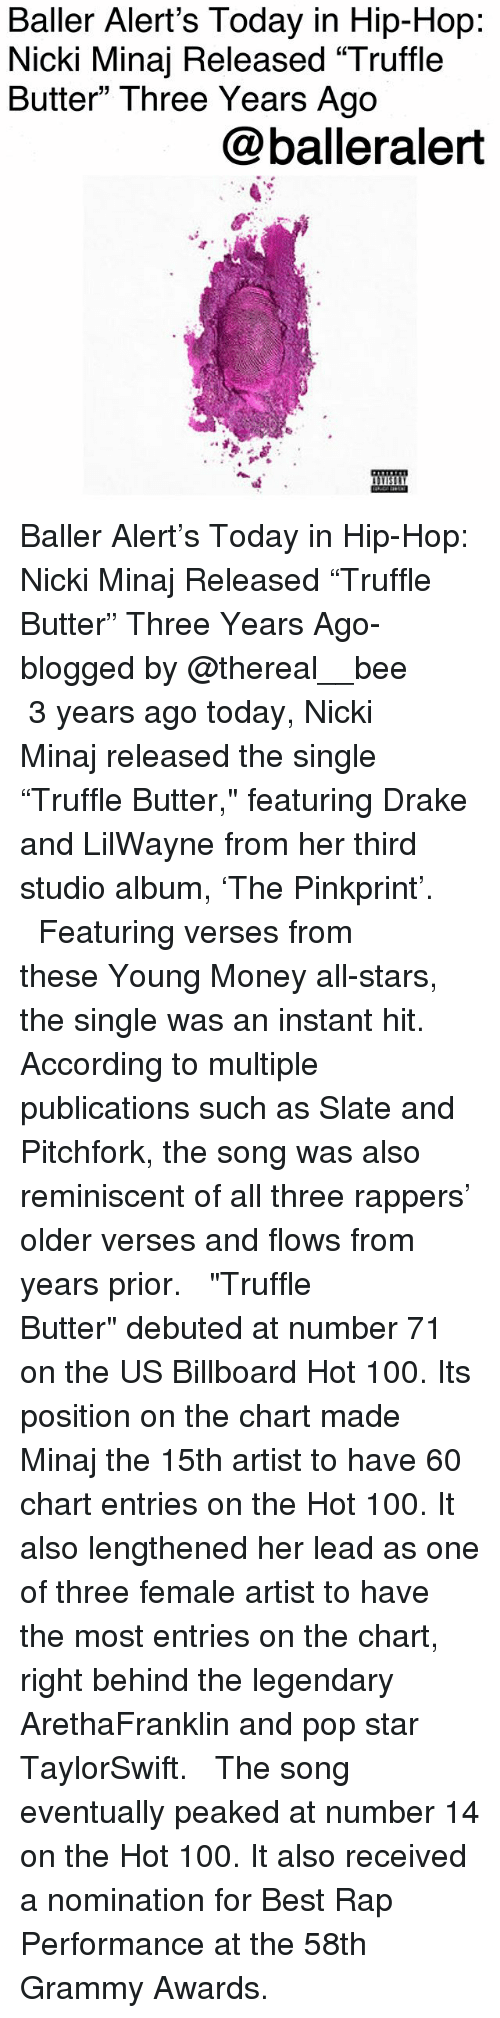 """Grammy Awards: Baller Alert's Today in Hip-Hop  Nicki Minaj Released """"Truffle  Butter"""" Three Years Ago  @balleralert Baller Alert's Today in Hip-Hop: Nicki Minaj Released """"Truffle Butter"""" Three Years Ago-blogged by @thereal__bee ⠀⠀⠀⠀⠀⠀⠀ ⠀⠀⠀⠀ 3 years ago today, Nicki Minaj released the single """"Truffle Butter,"""" featuring Drake and LilWayne from her third studio album, 'The Pinkprint'. ⠀⠀⠀⠀⠀⠀⠀ ⠀⠀⠀⠀ Featuring verses from these Young Money all-stars, the single was an instant hit. According to multiple publications such as Slate and Pitchfork, the song was also reminiscent of all three rappers' older verses and flows from years prior. ⠀⠀⠀⠀⠀⠀⠀ ⠀⠀⠀⠀ """"Truffle Butter"""" debuted at number 71 on the US Billboard Hot 100. Its position on the chart made Minaj the 15th artist to have 60 chart entries on the Hot 100. It also lengthened her lead as one of three female artist to have the most entries on the chart, right behind the legendary ArethaFranklin and pop star TaylorSwift. ⠀⠀⠀⠀⠀⠀⠀ ⠀⠀⠀⠀ The song eventually peaked at number 14 on the Hot 100. It also received a nomination for Best Rap Performance at the 58th Grammy Awards."""